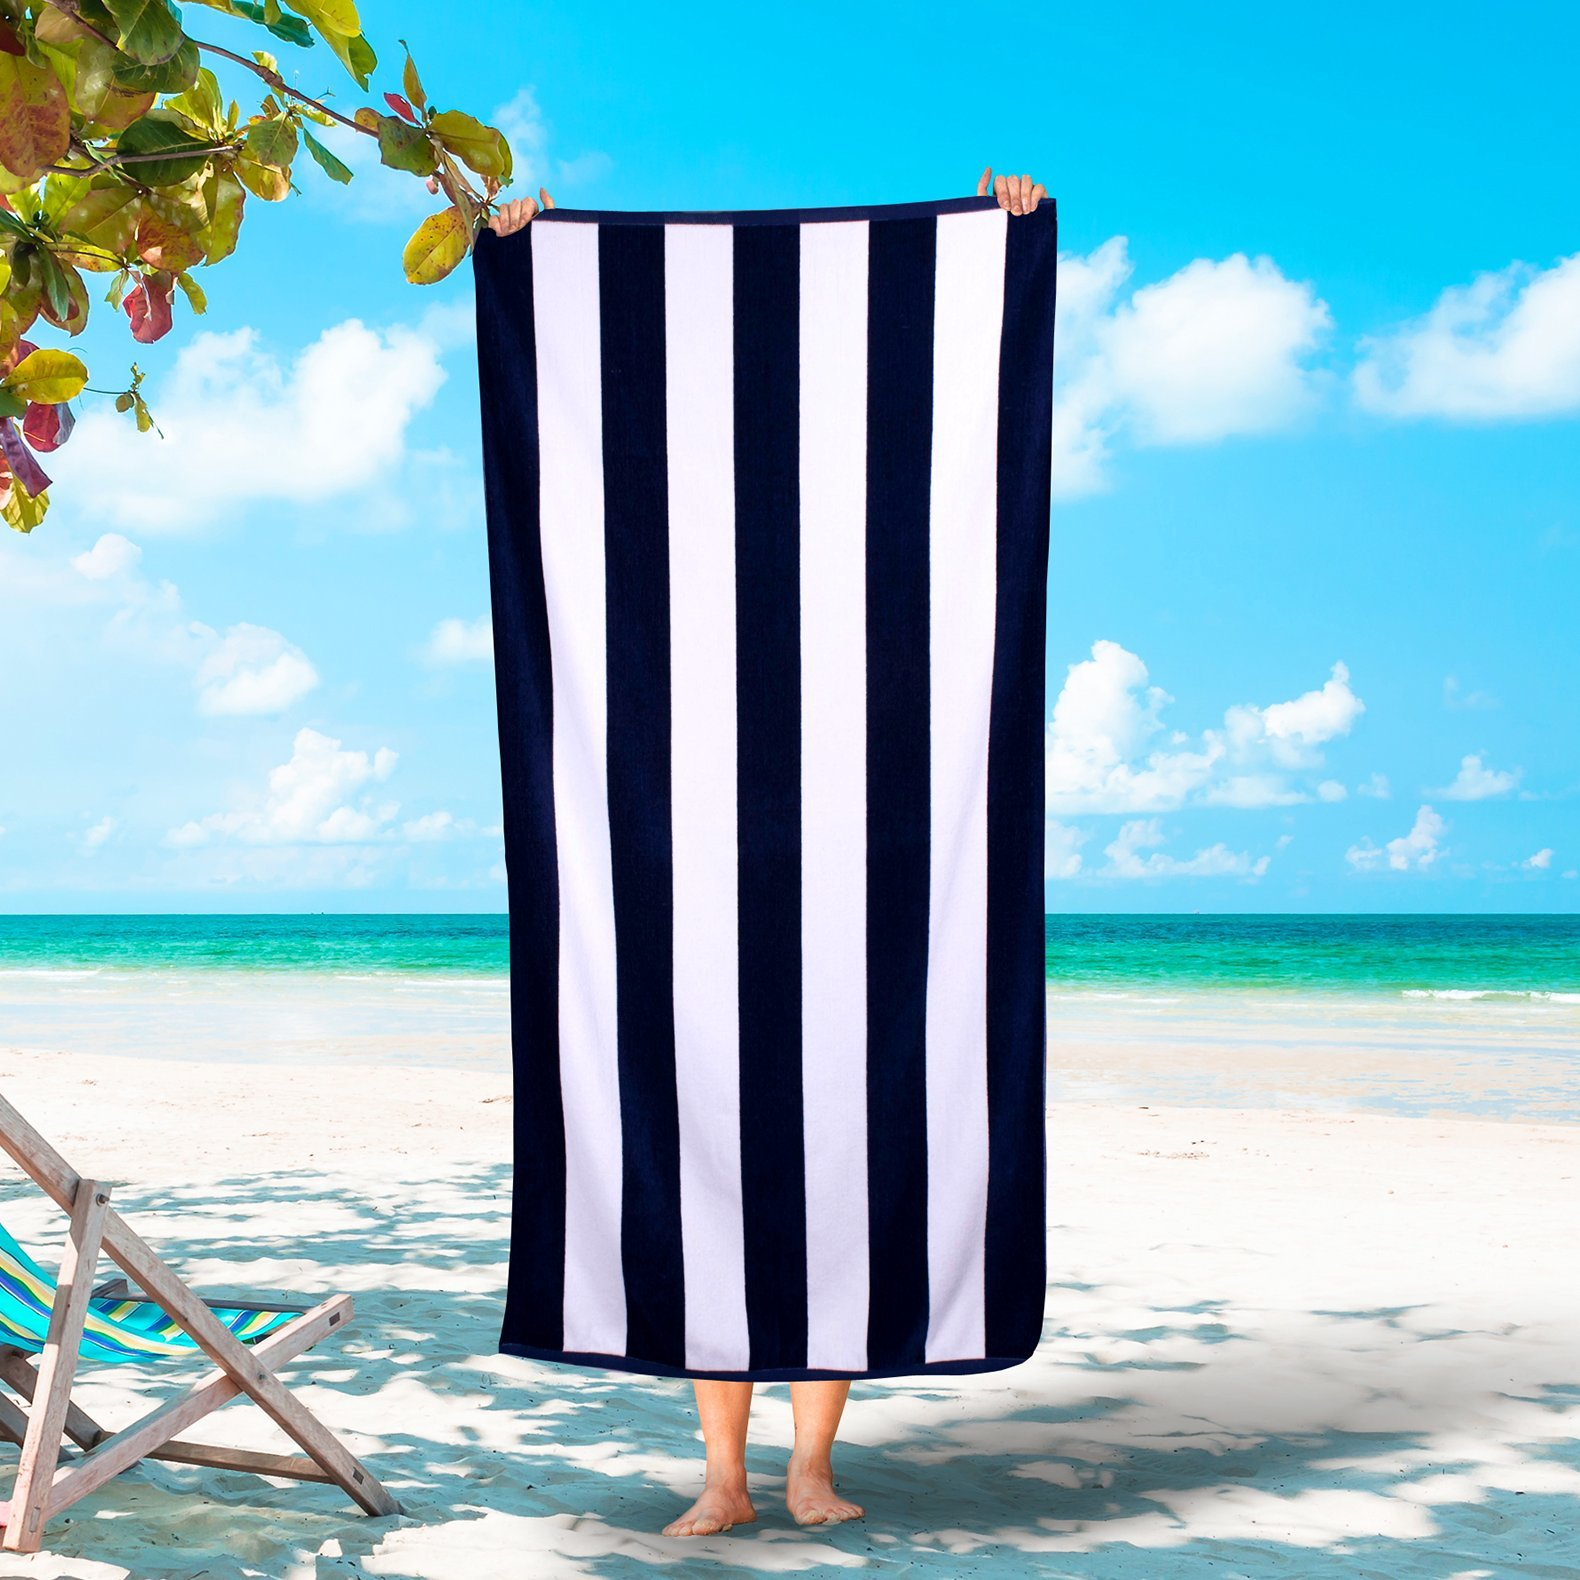 Silken Luxury Cabana Beach Towel 100% Turkish Cotton Soft Striped Towels (Navy, 3)